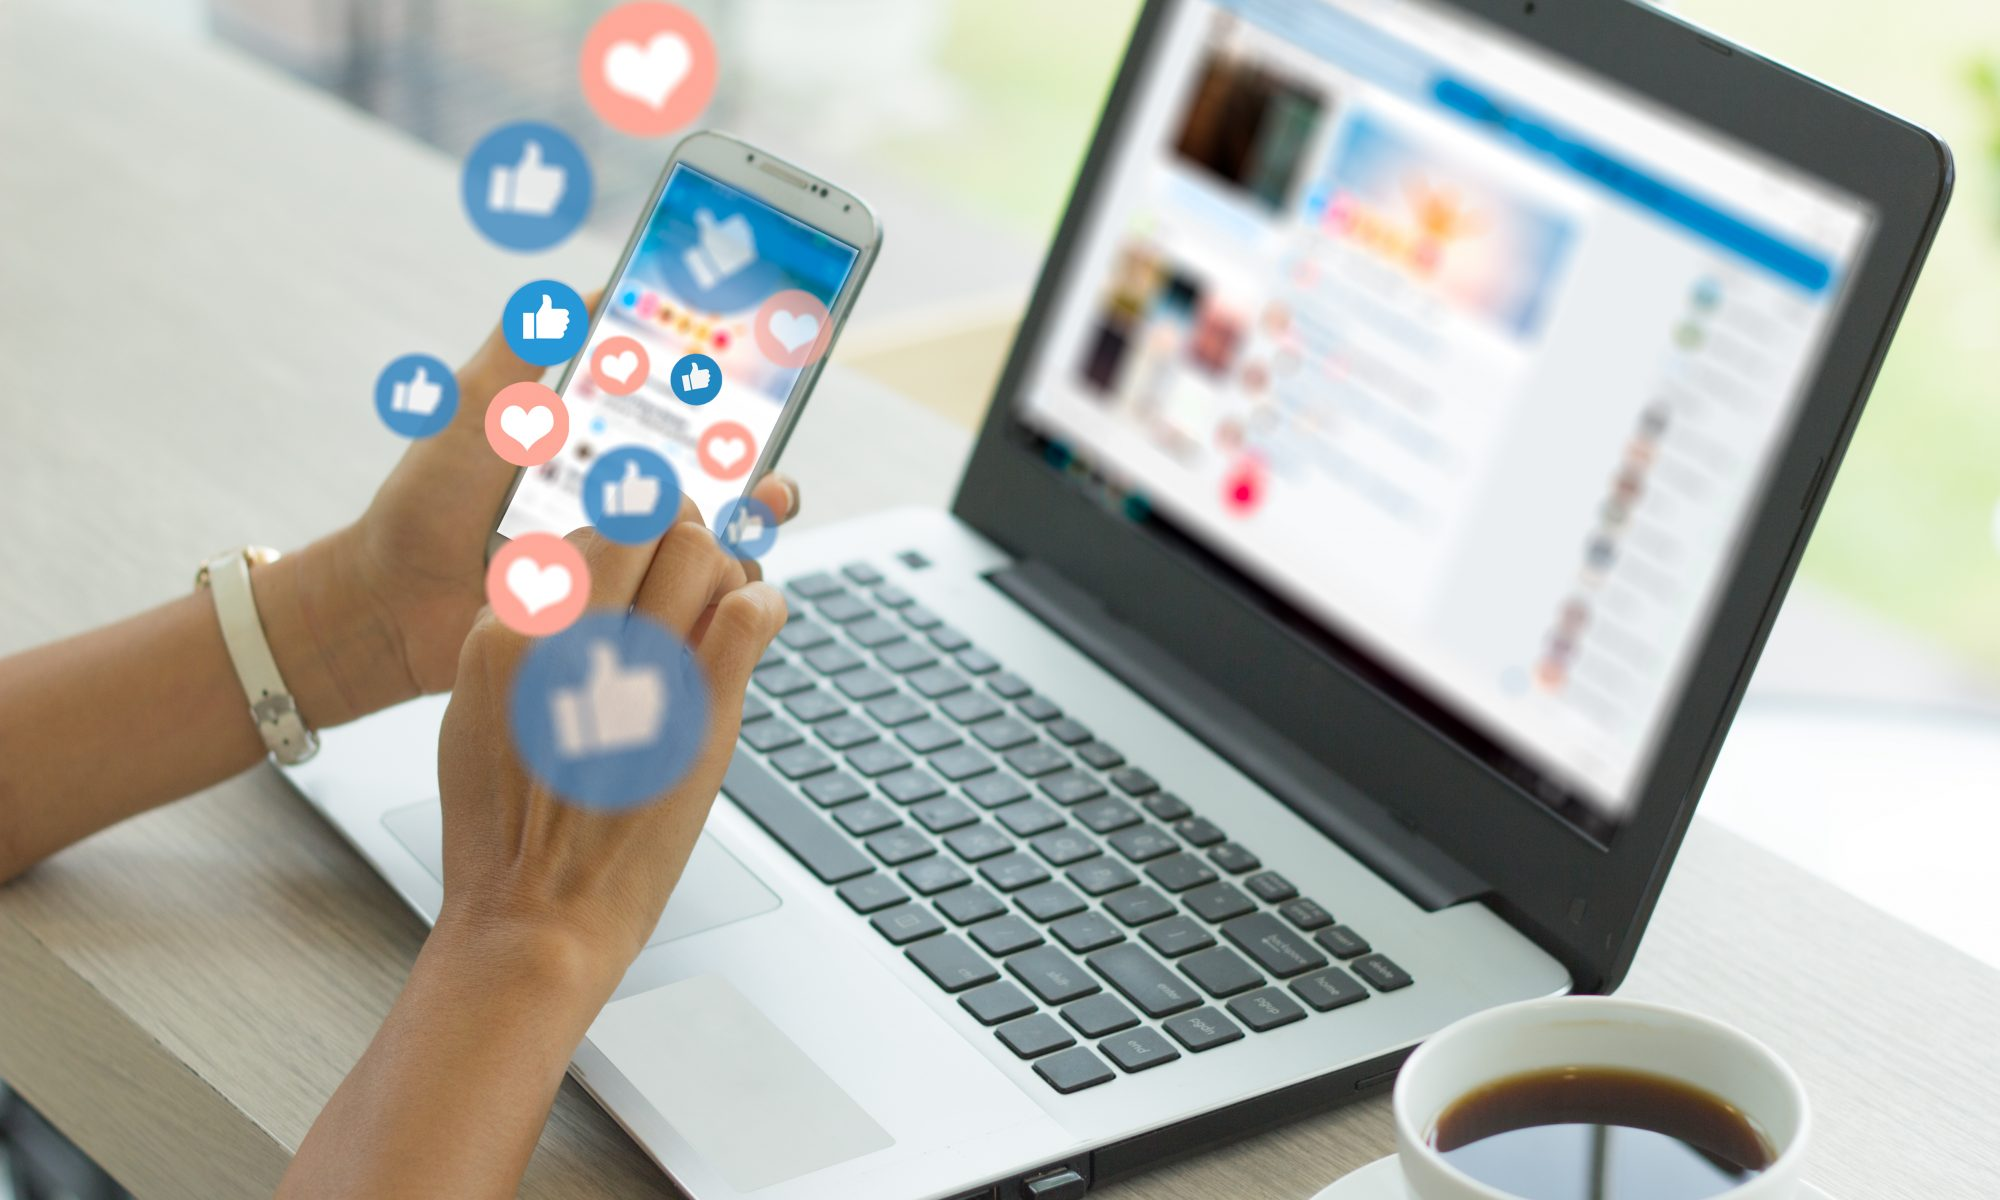 Woman's hand holding a phone with social media reactions floating above the screen, a laptop in the background showing social media